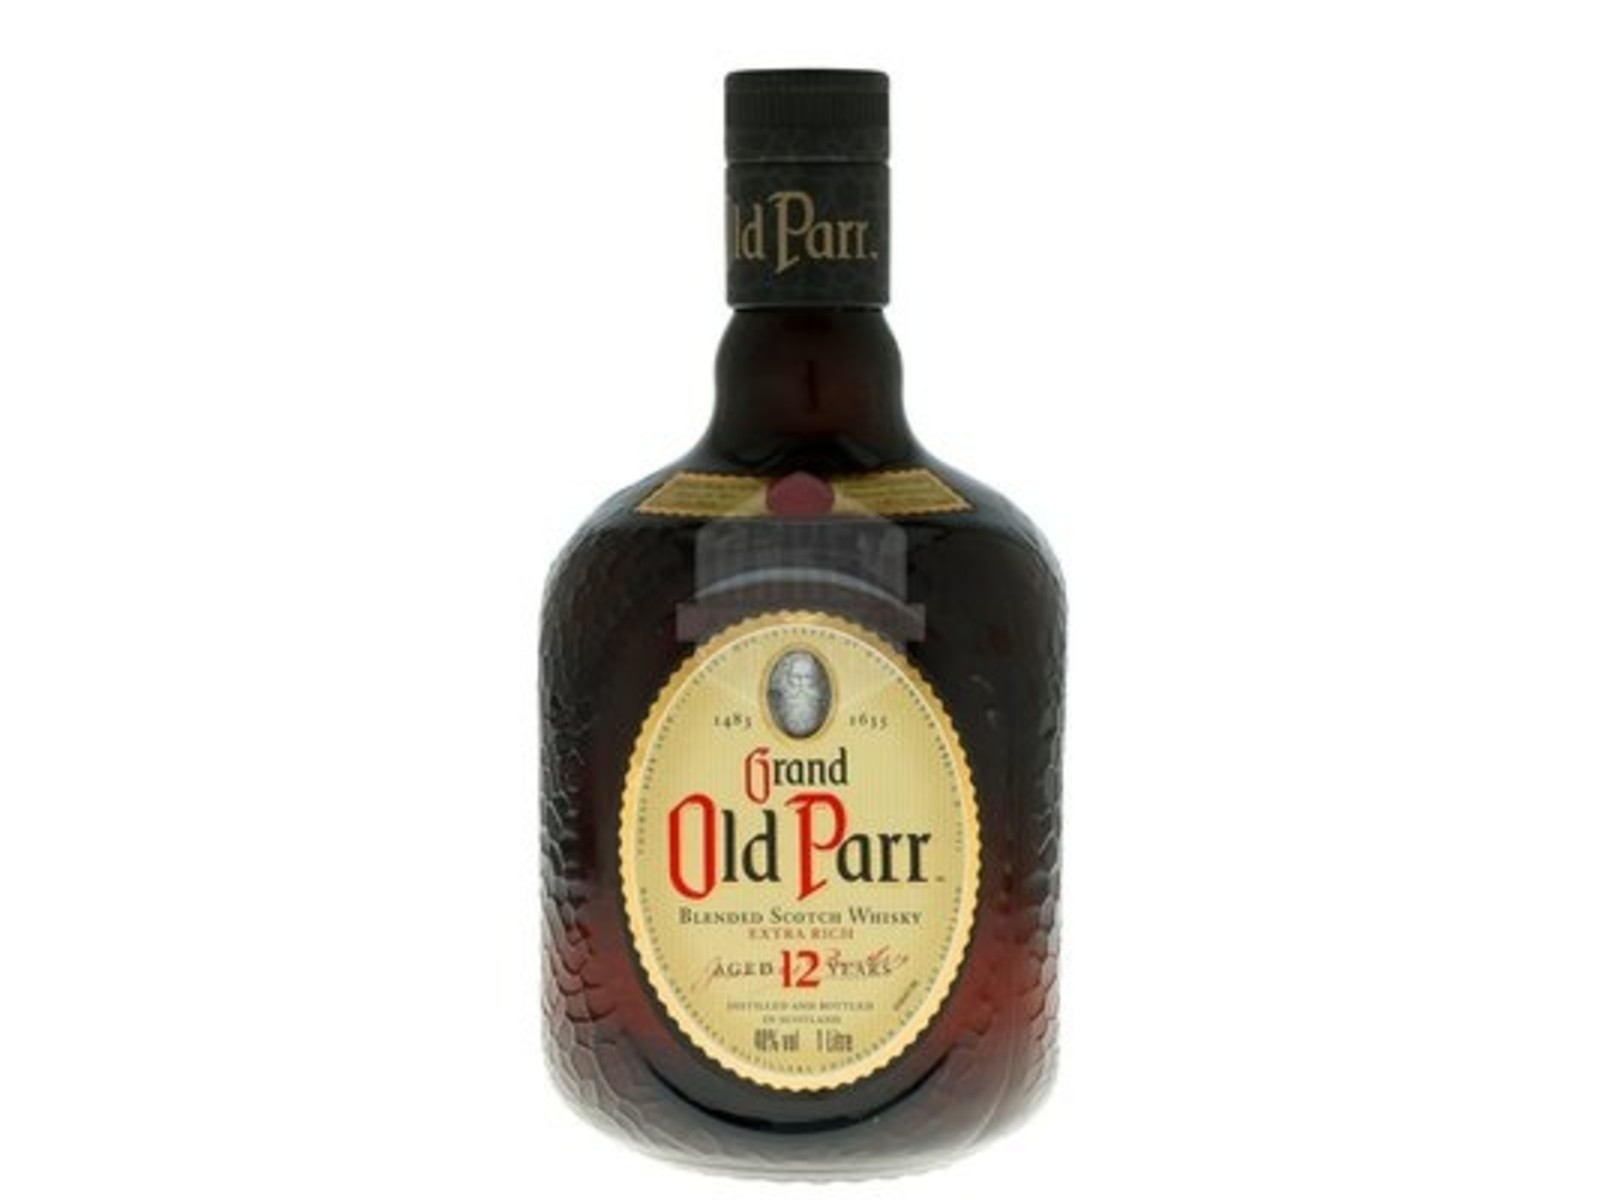 Grand Old Parr Grand Old Parr / 12 Years